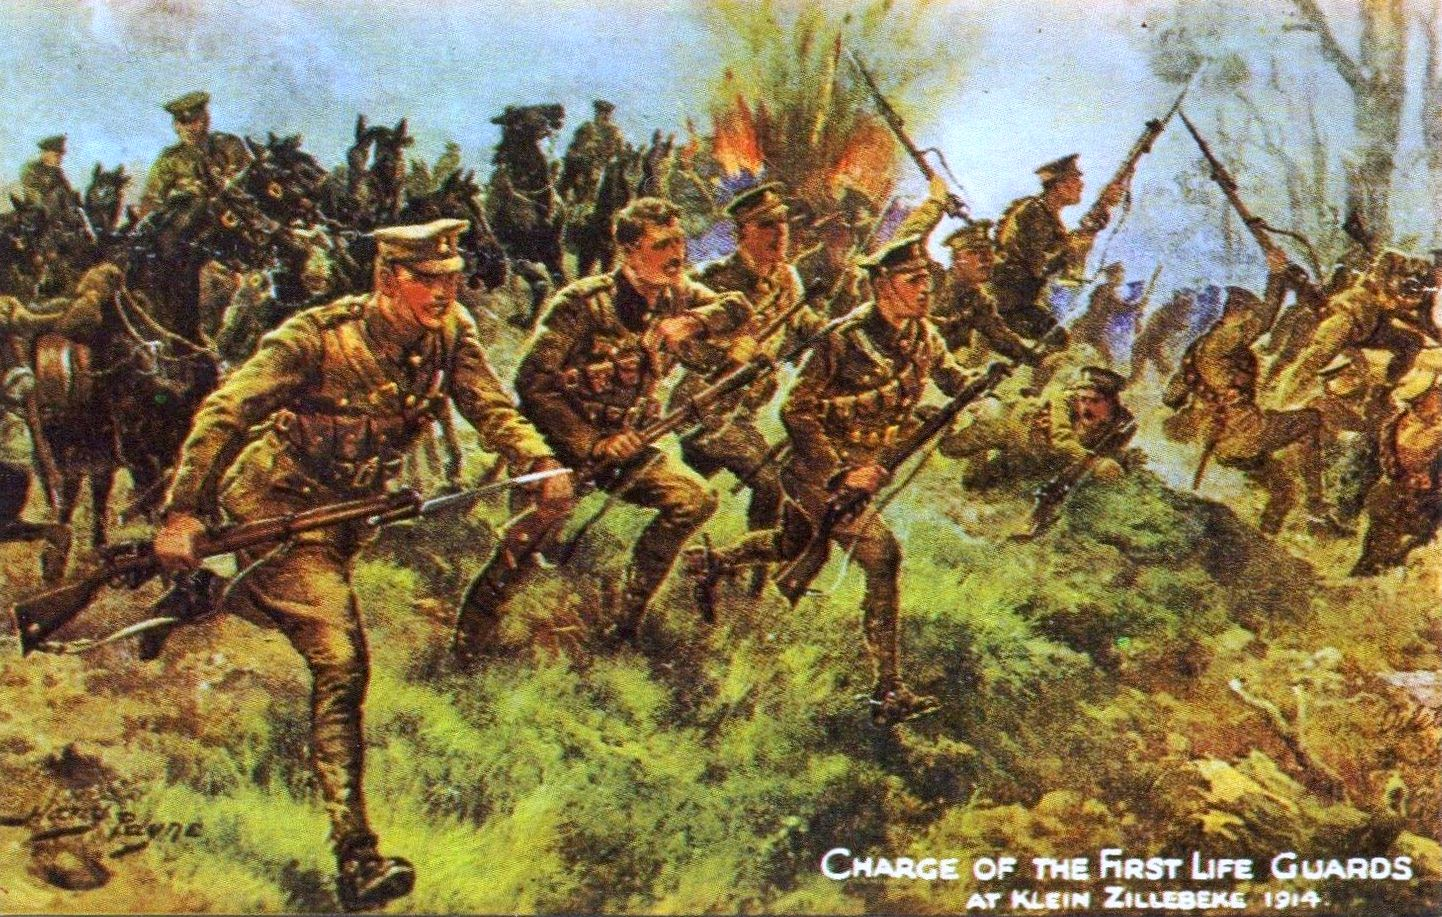 1st Life Guards charge at Klein Zillebeke 1914